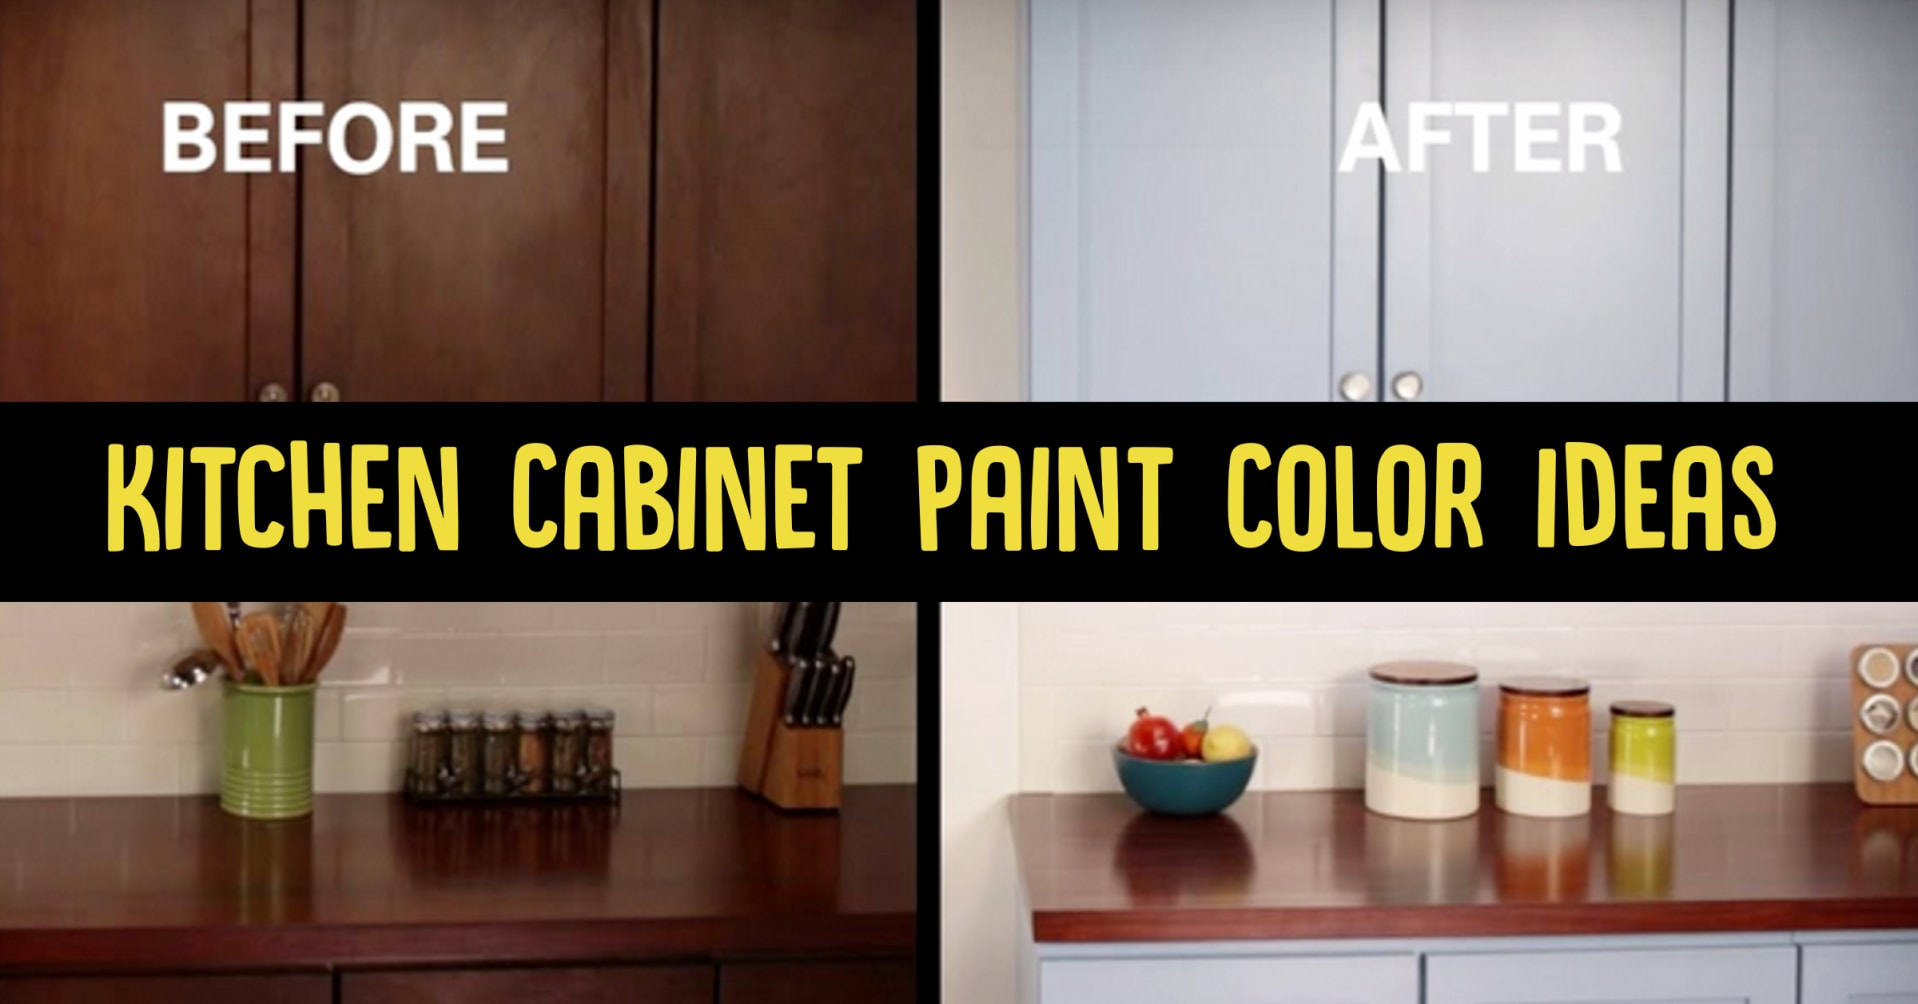 Paint colors for kitchen cabinets - pictures - top paint colors and most popular painted cabinet colors this year